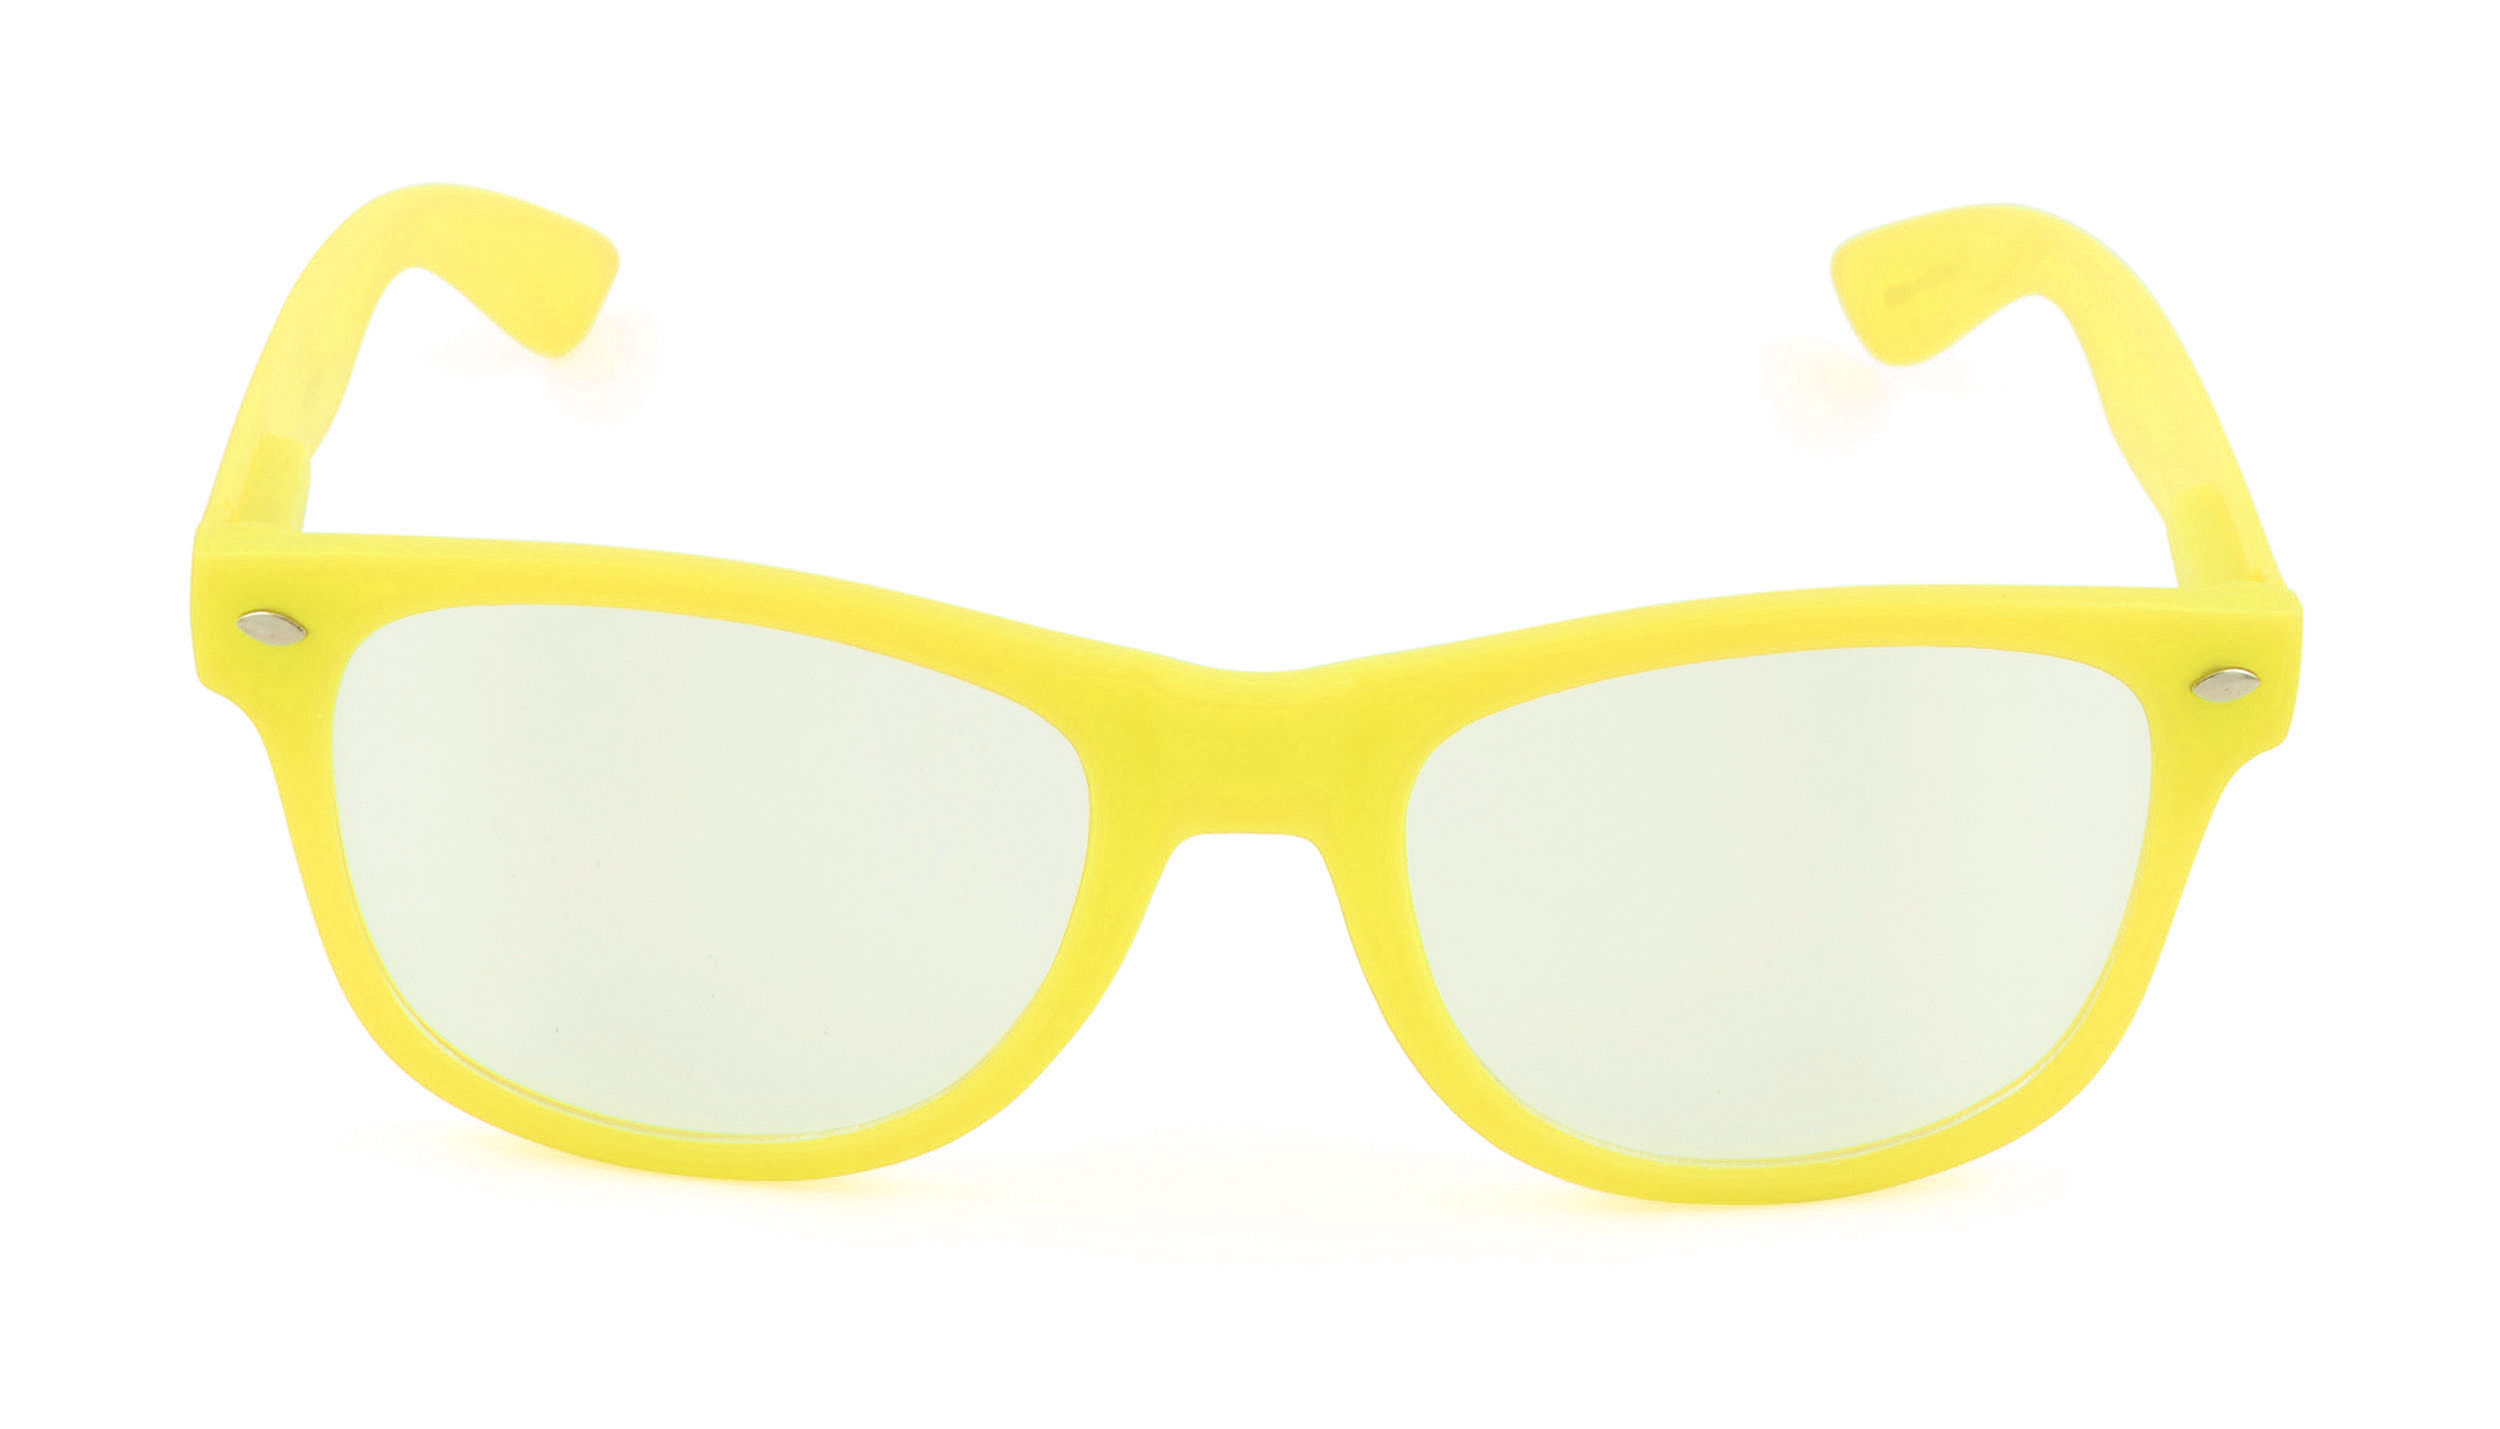 Belle Donne - Unisex Cool Rave Style Glow in the Dark Sunglasses - Yellow